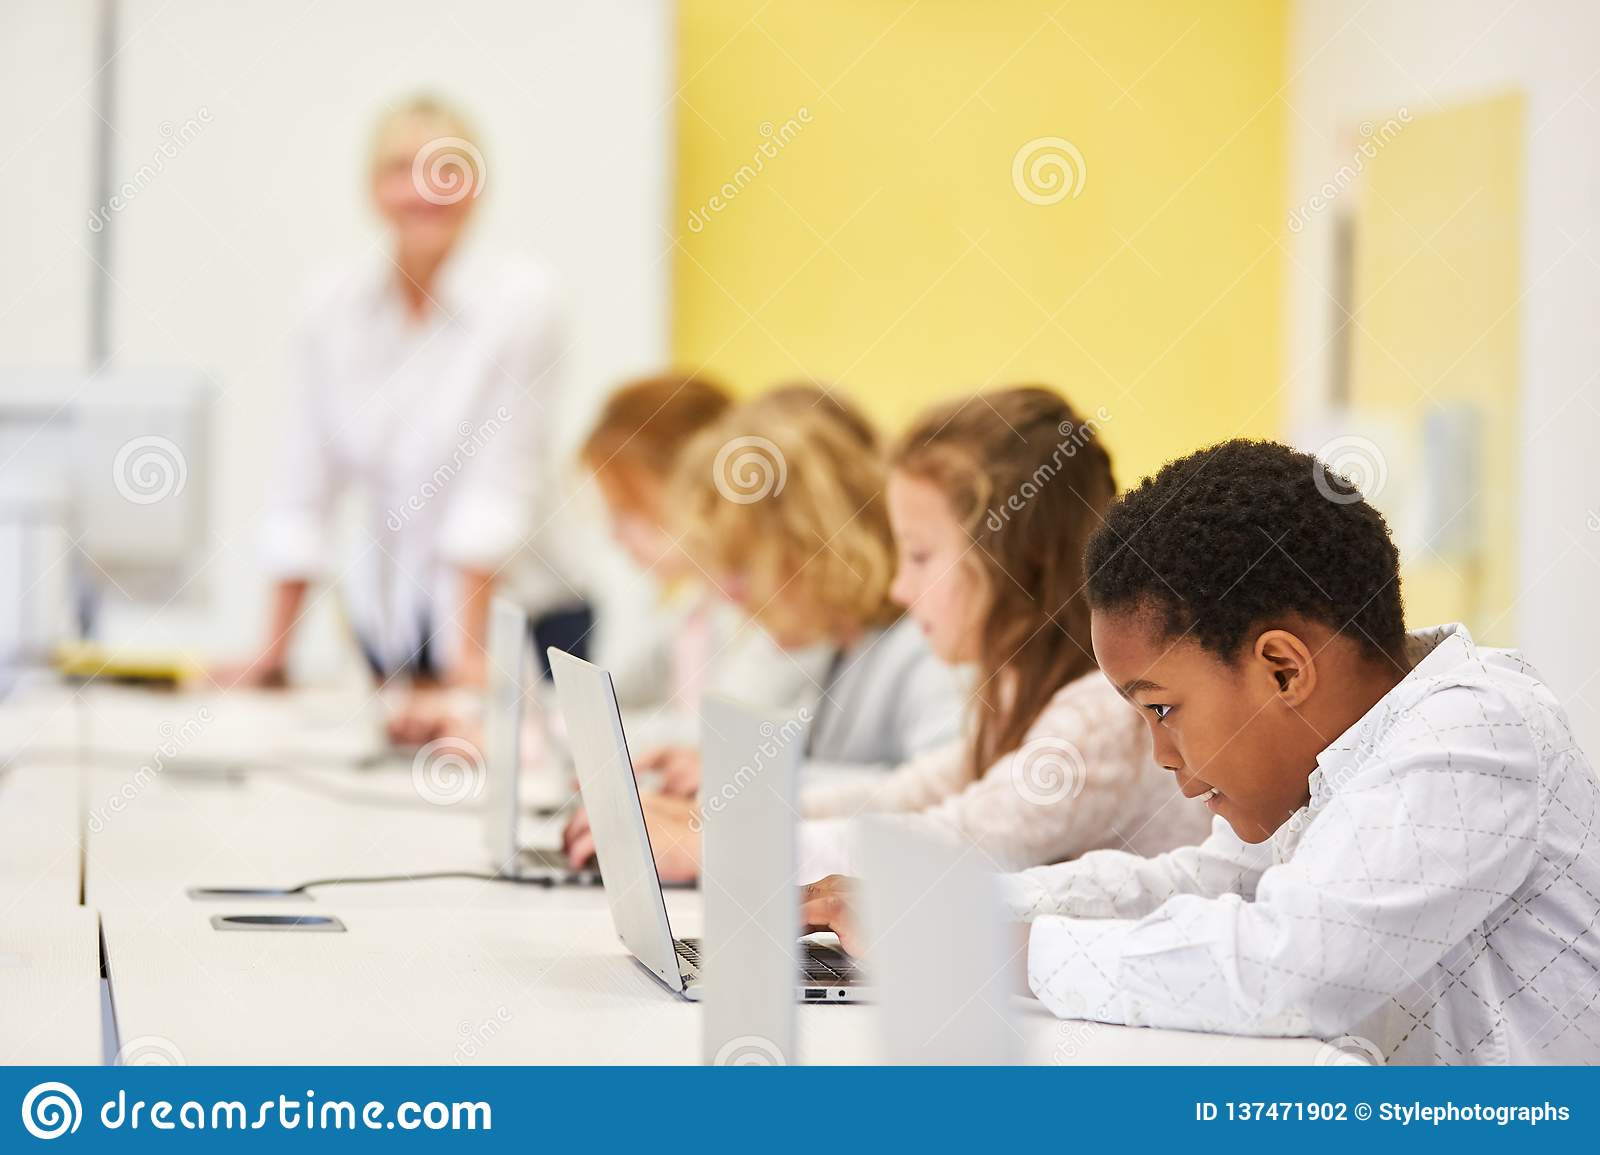 Group Of Students In Computer Course Stock Photo - Image of computer